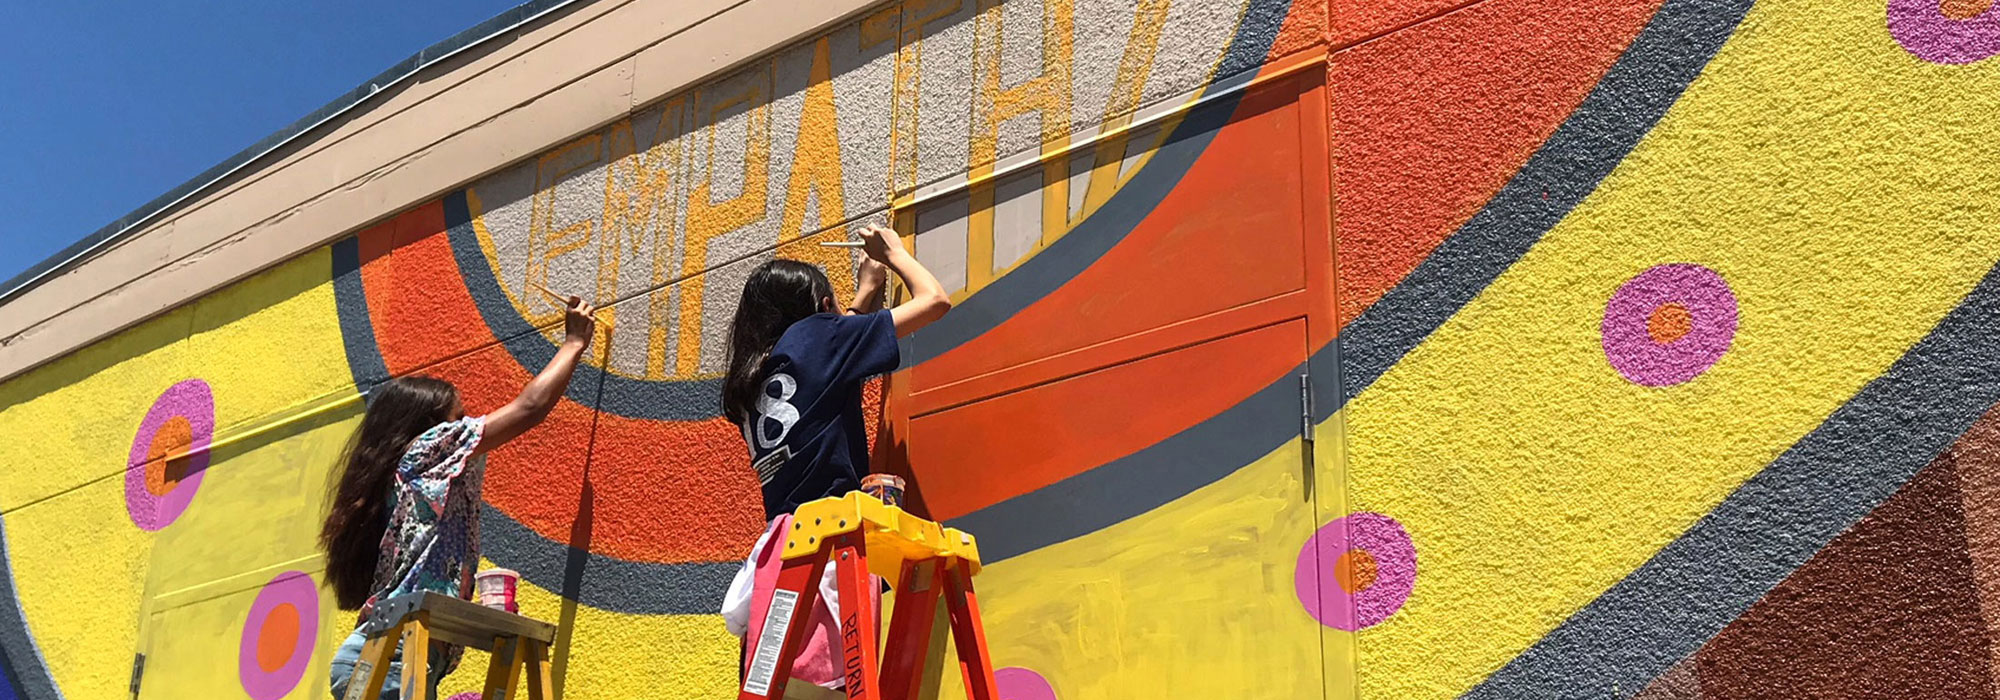 Transforming Young Lives through art In San Diego's Unified School District.